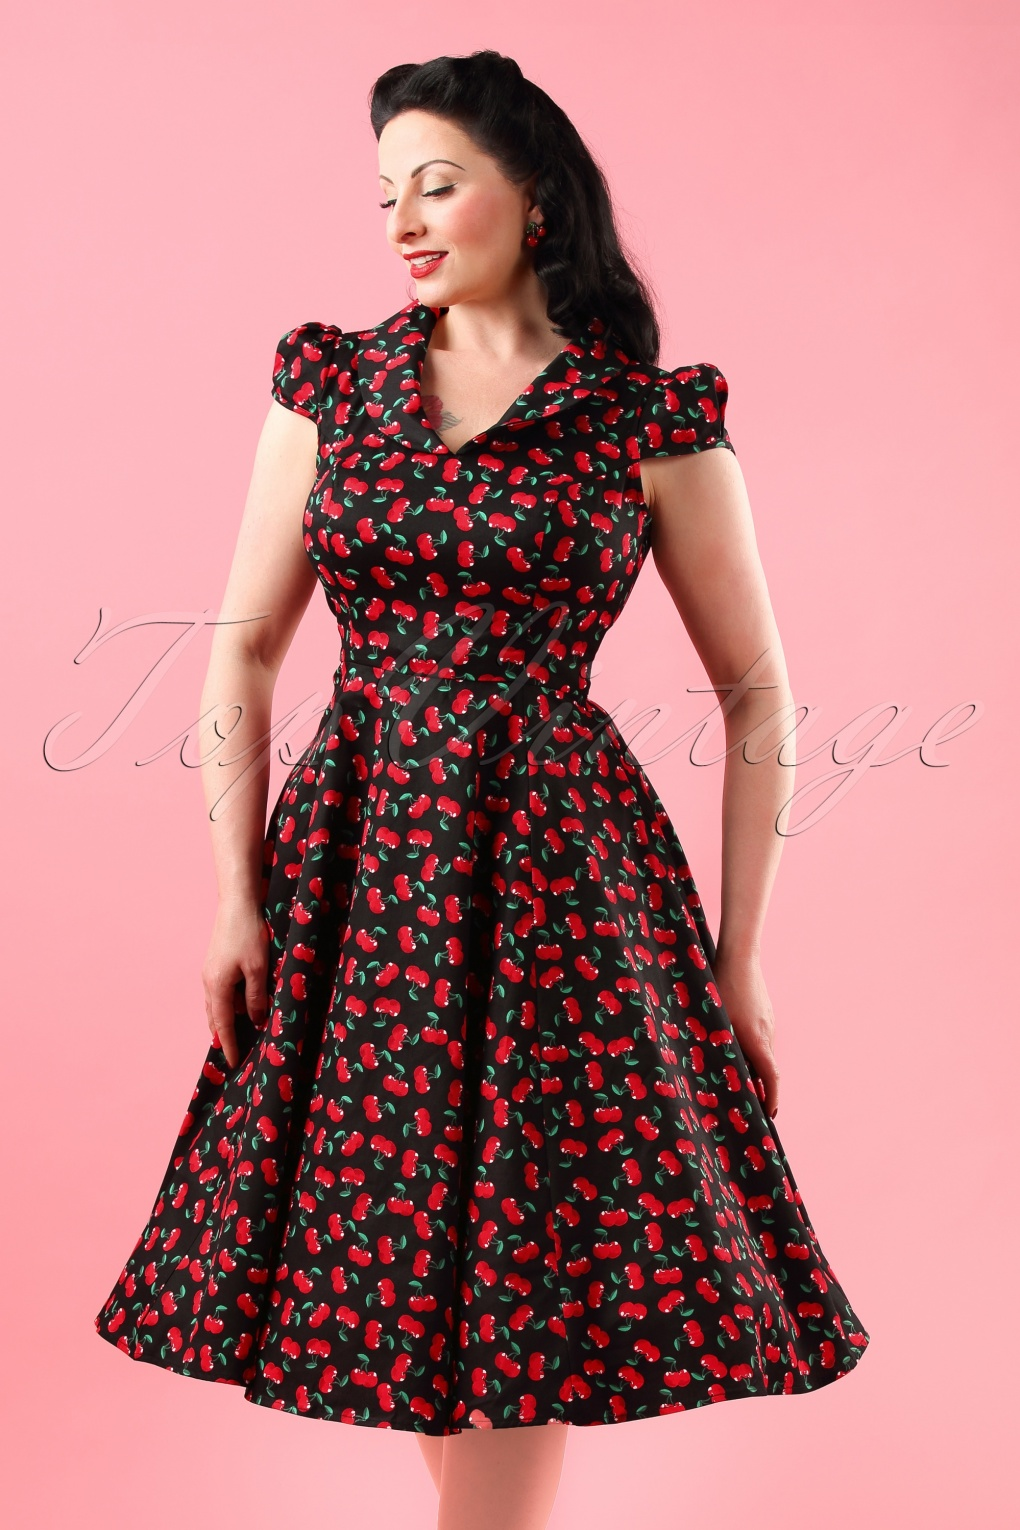 1950s Swing Dresses 50s Blossom Cherry Swing Dress in Black £47.73 AT vintagedancer.com